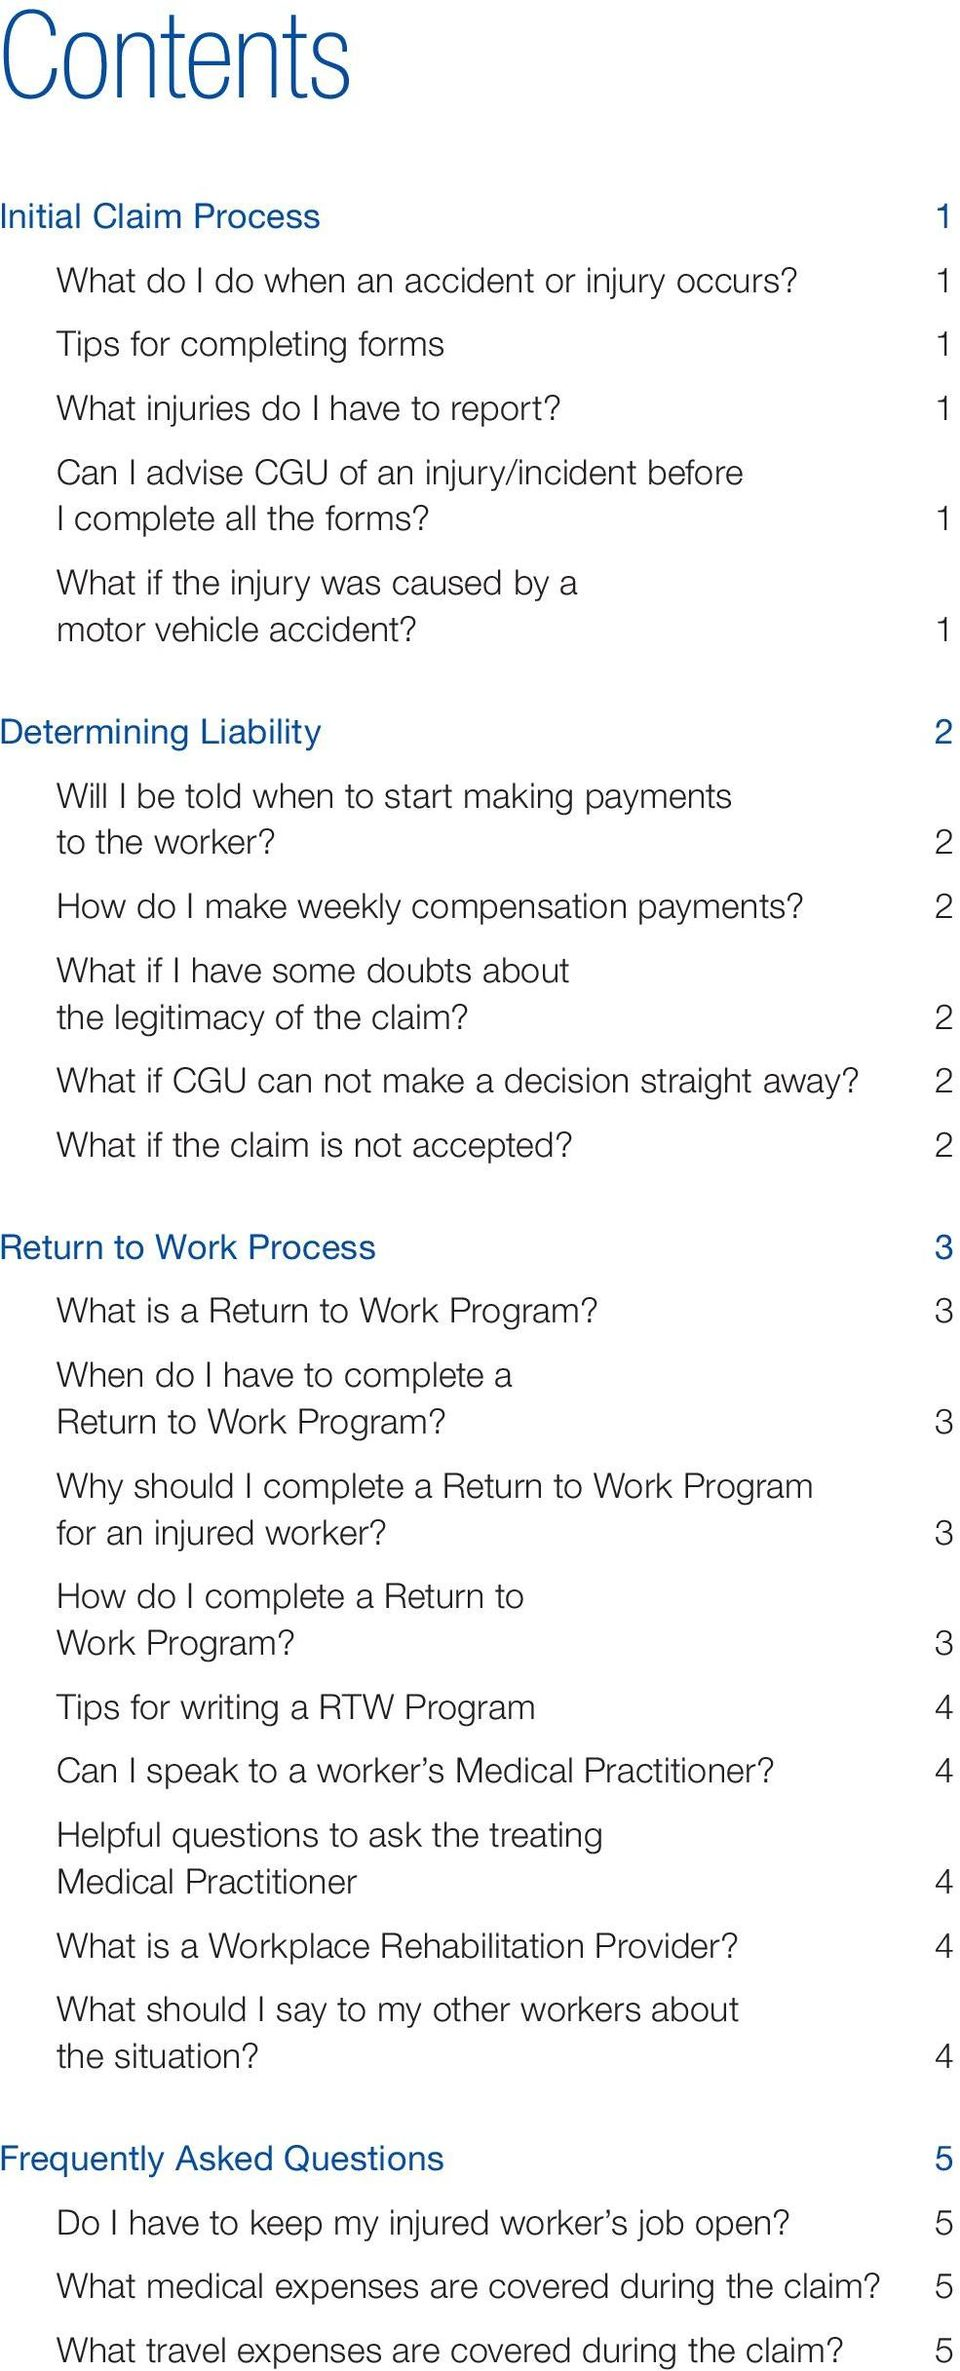 1 Determining Liability 2 Will I be told when to start making payments to the worker? 2 How do I make weekly compensation payments? 2 What if I have some doubts about the legitimacy of the claim?